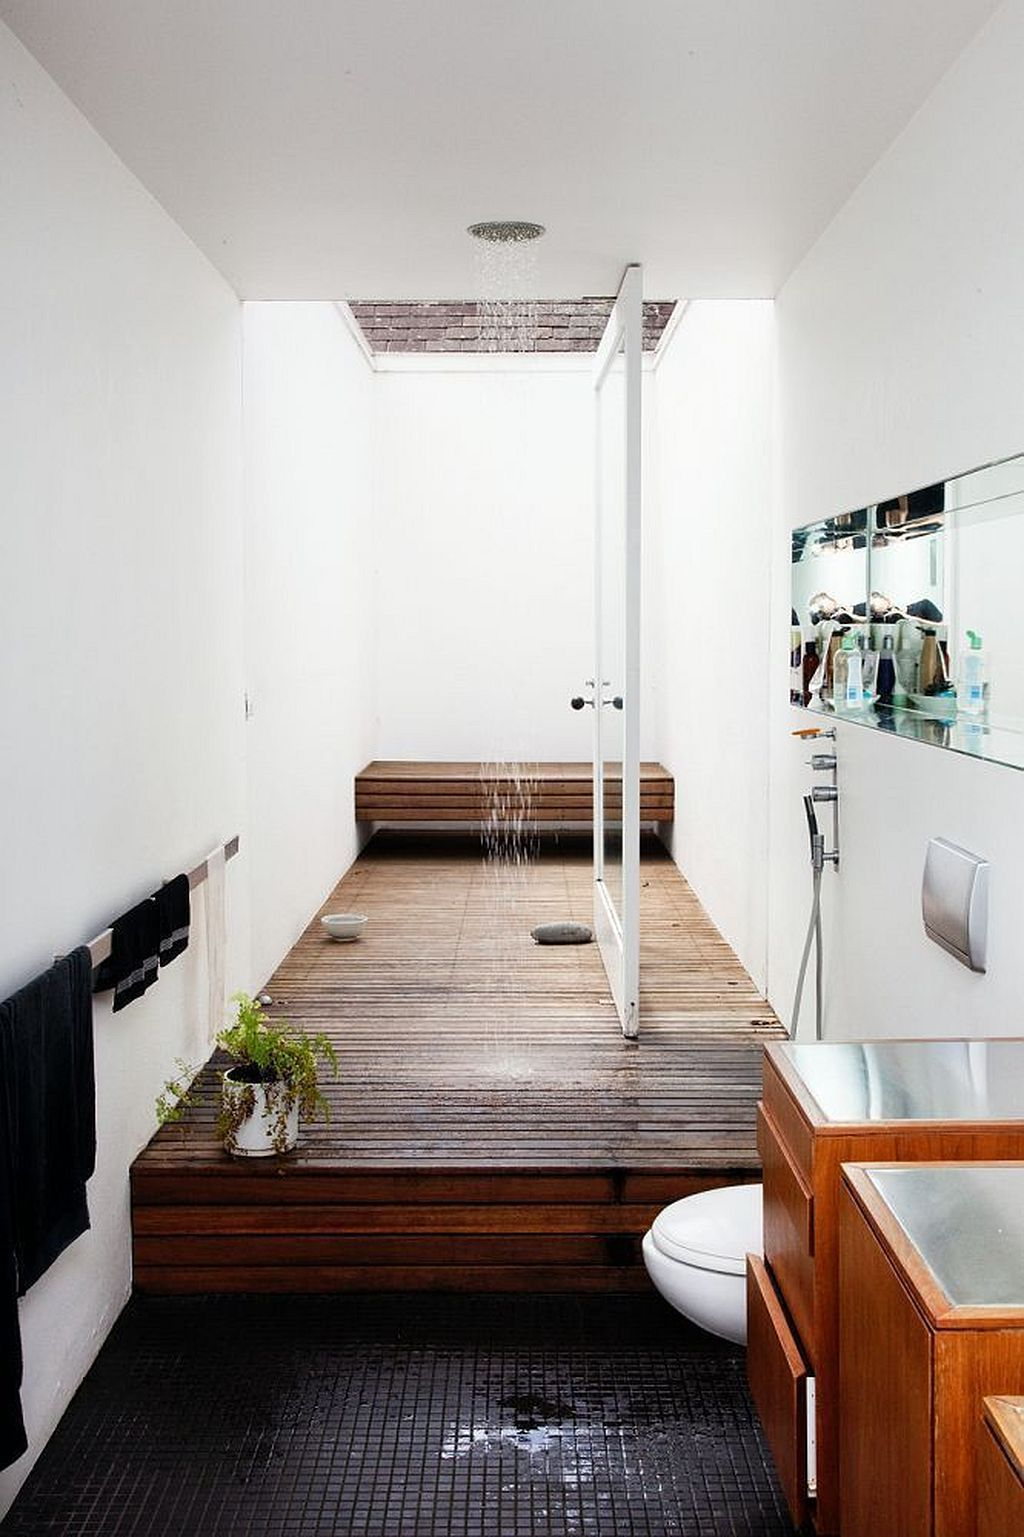 Awesome Ideas You Can Learn About Shipping Container Apartment 45 Wohnen Bad Inspiration Badezimmer Design